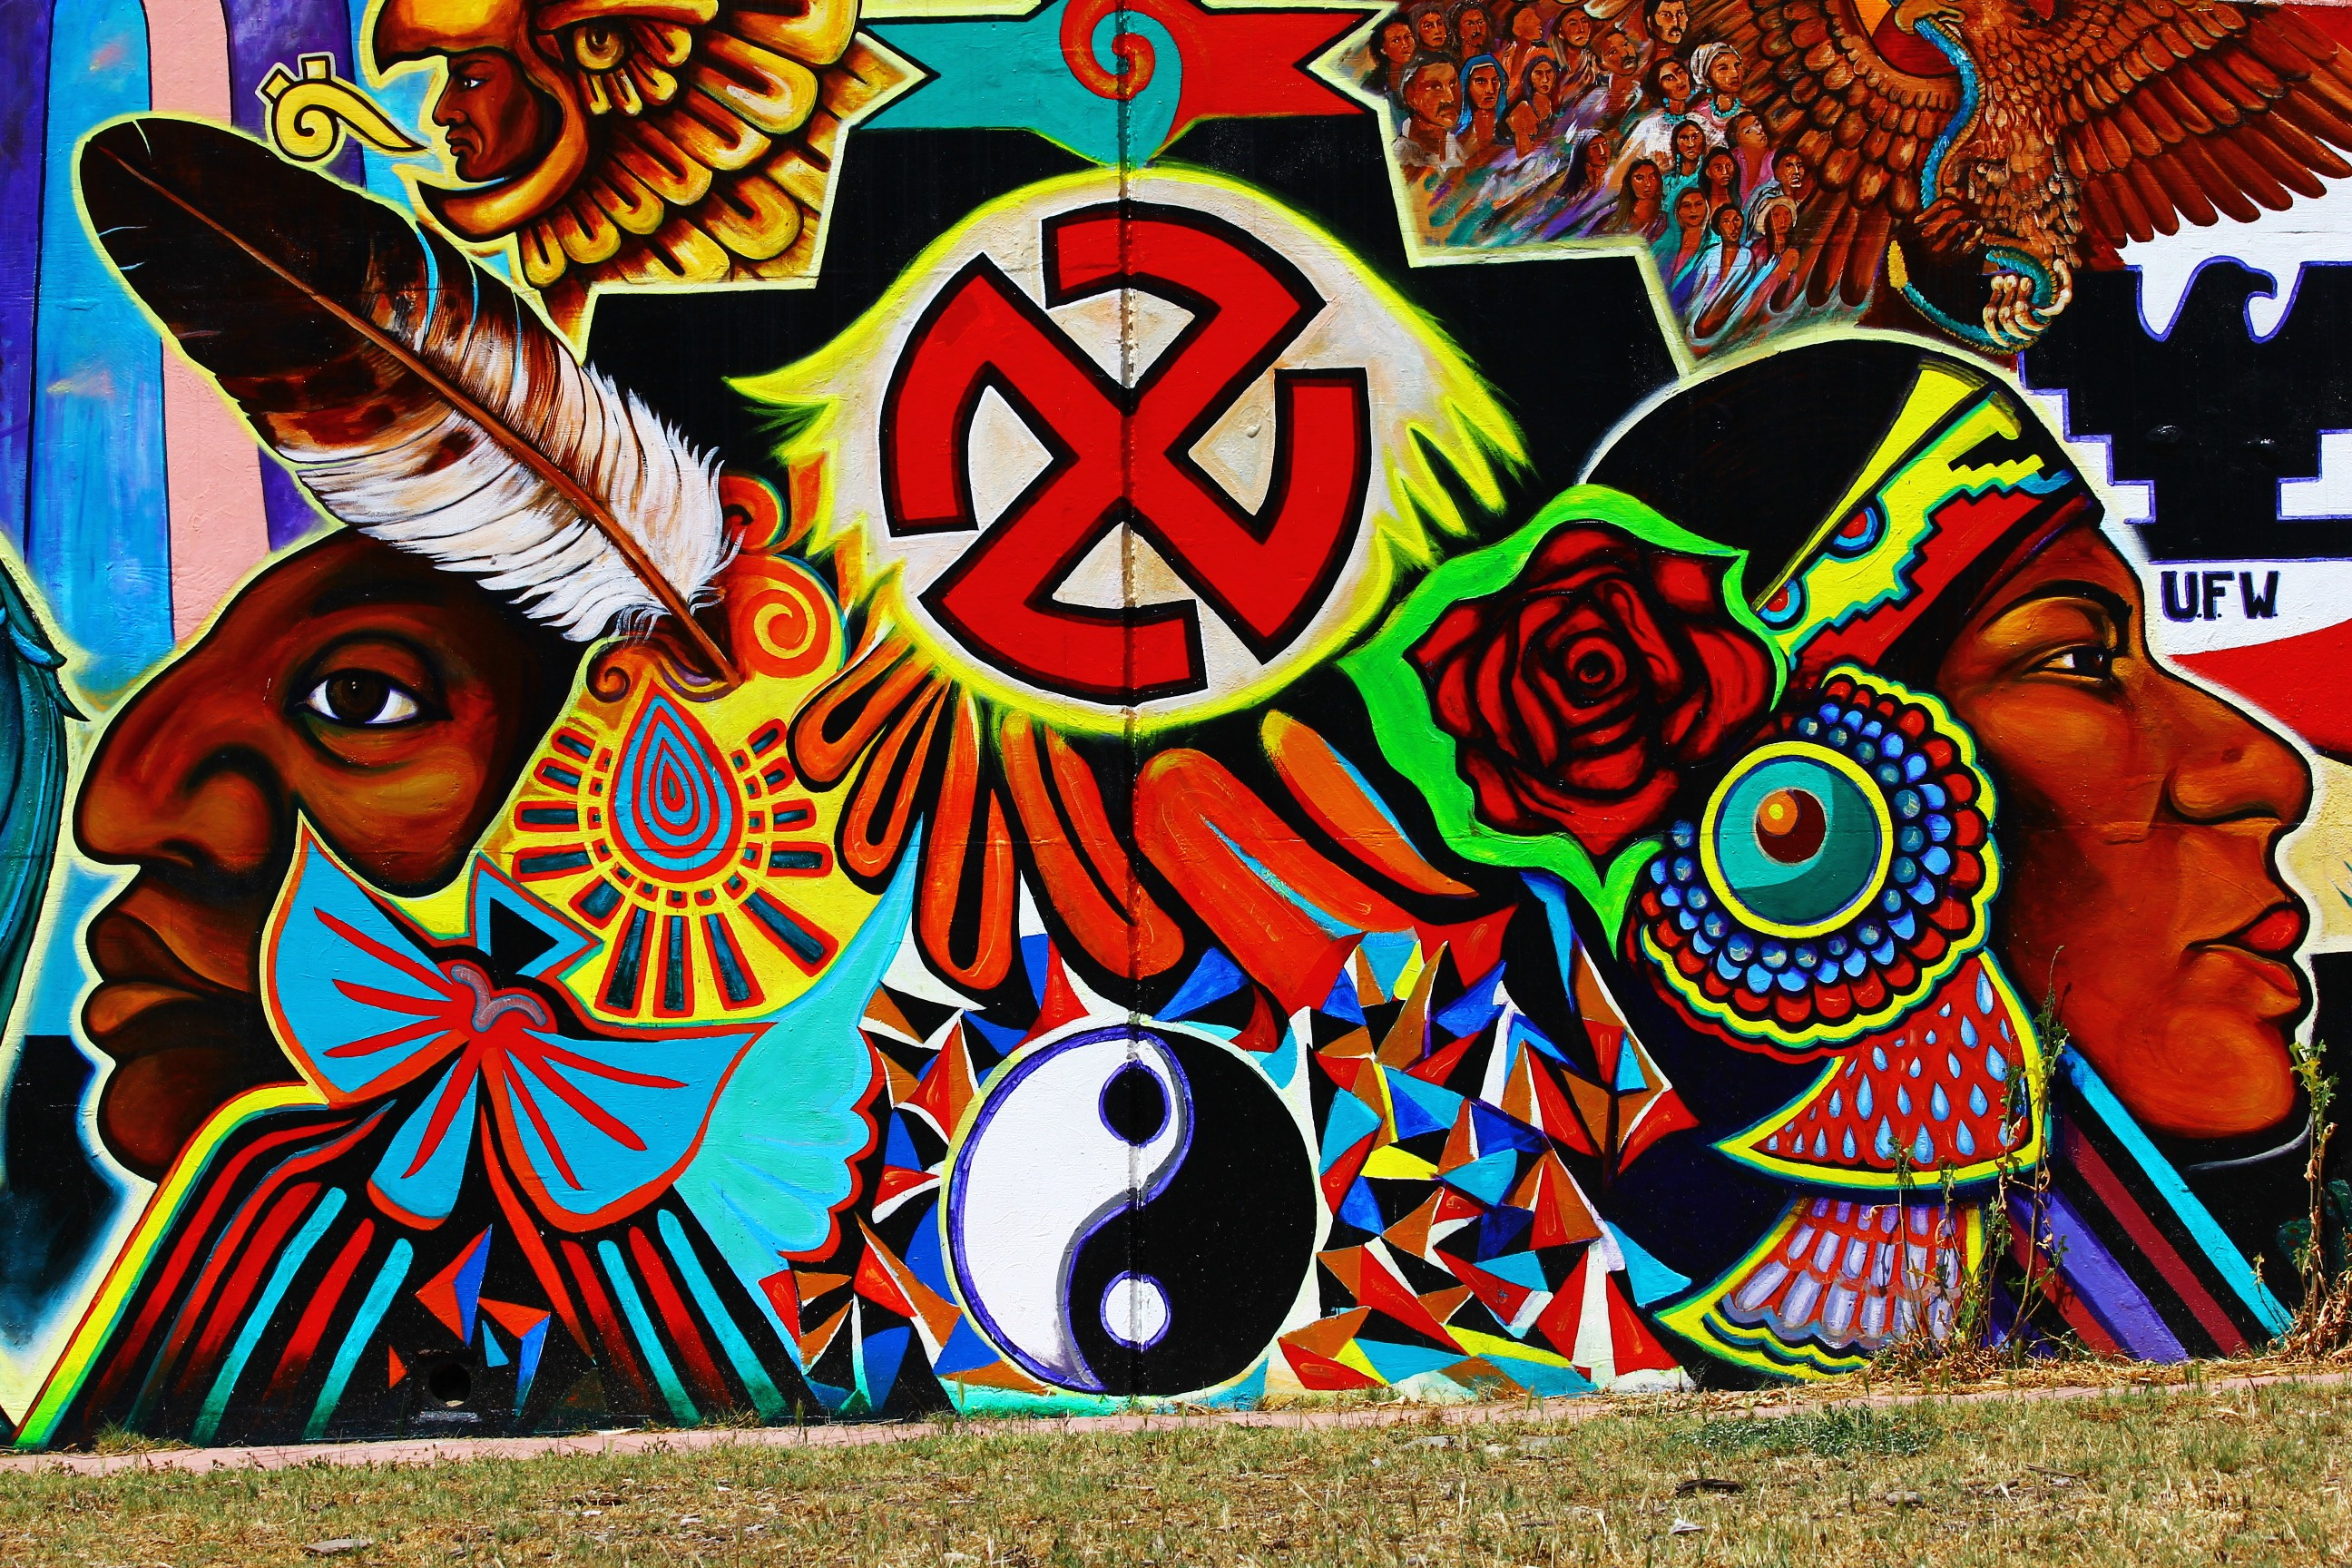 San diego street art chicano park murals via canon 550d for Chicano park mural